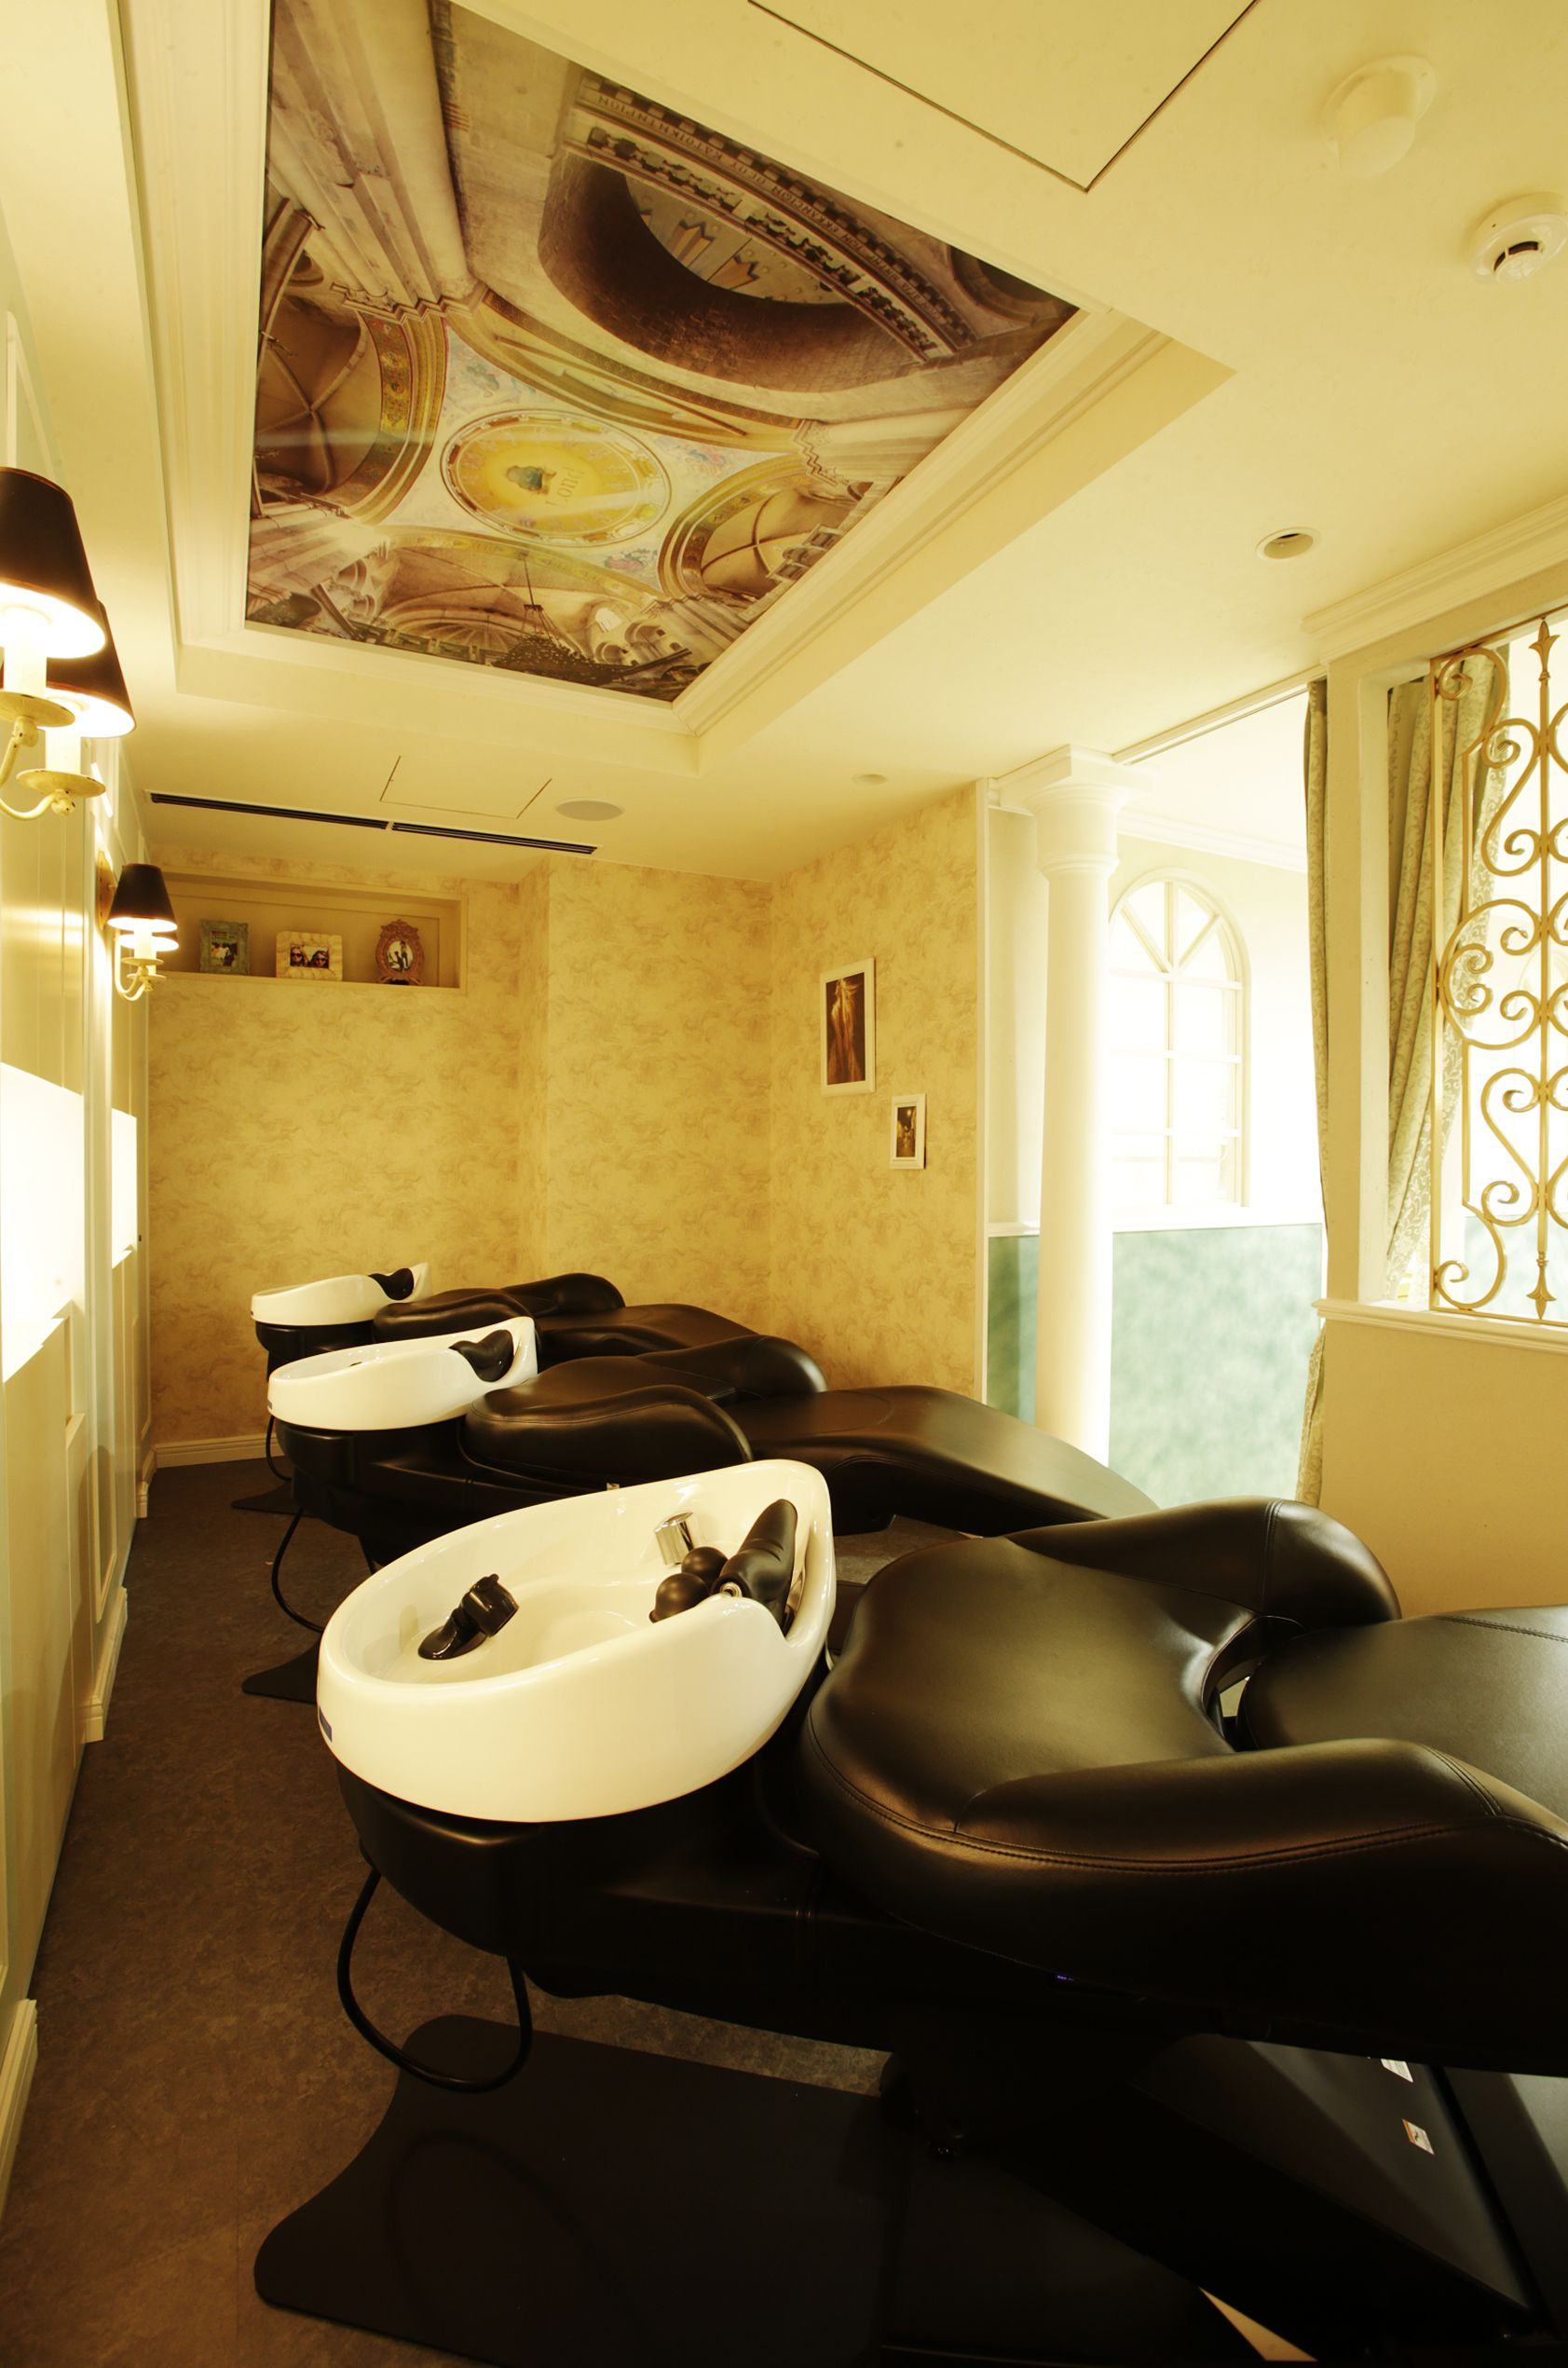 Beauty salon interior design ideas spa and salon for Beauty salons interior designs